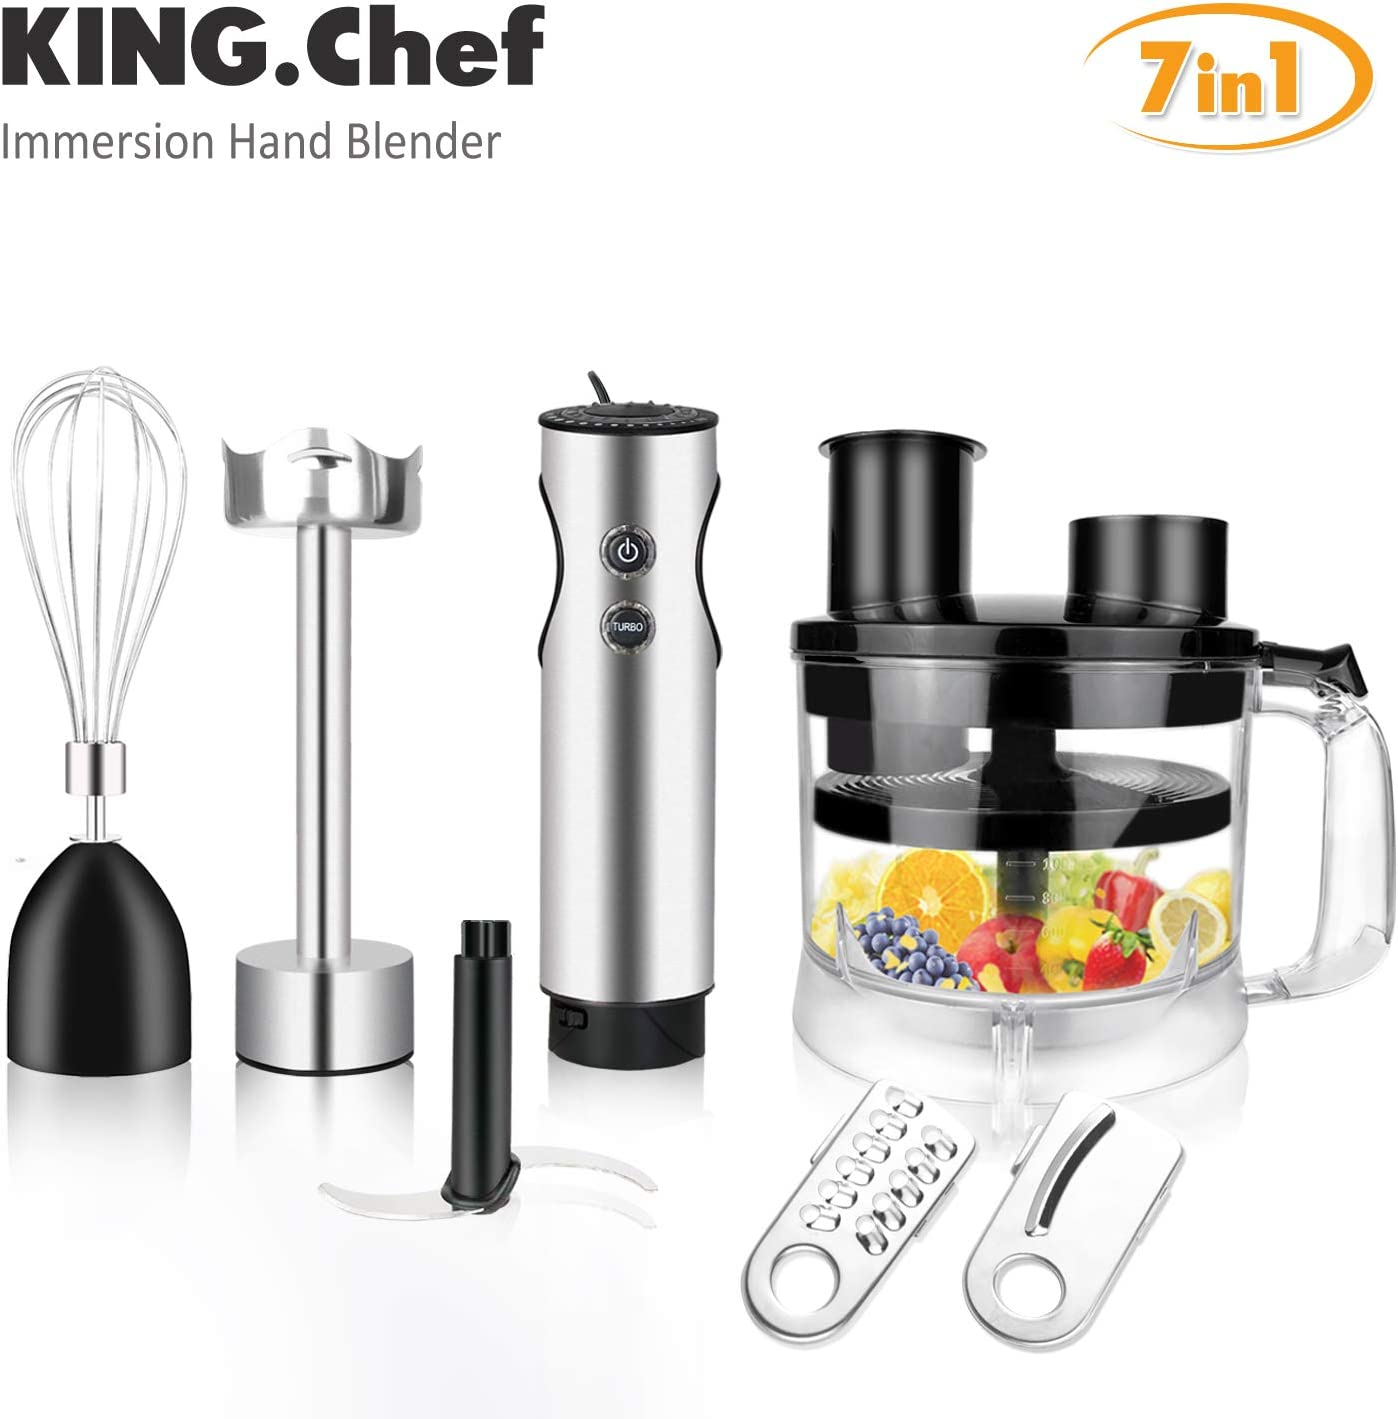 KING.Chef Powerful 7-in-1 12-speed Turbo Immersion Hand Blender,Stainless Steel Stick Blender, BPA-Free Food Processor, Egg Beater, 3 PCS Titanium Coating Blade, Ergonomic Grip Blender for Sauces Smoothie Puree Infant Food, Black